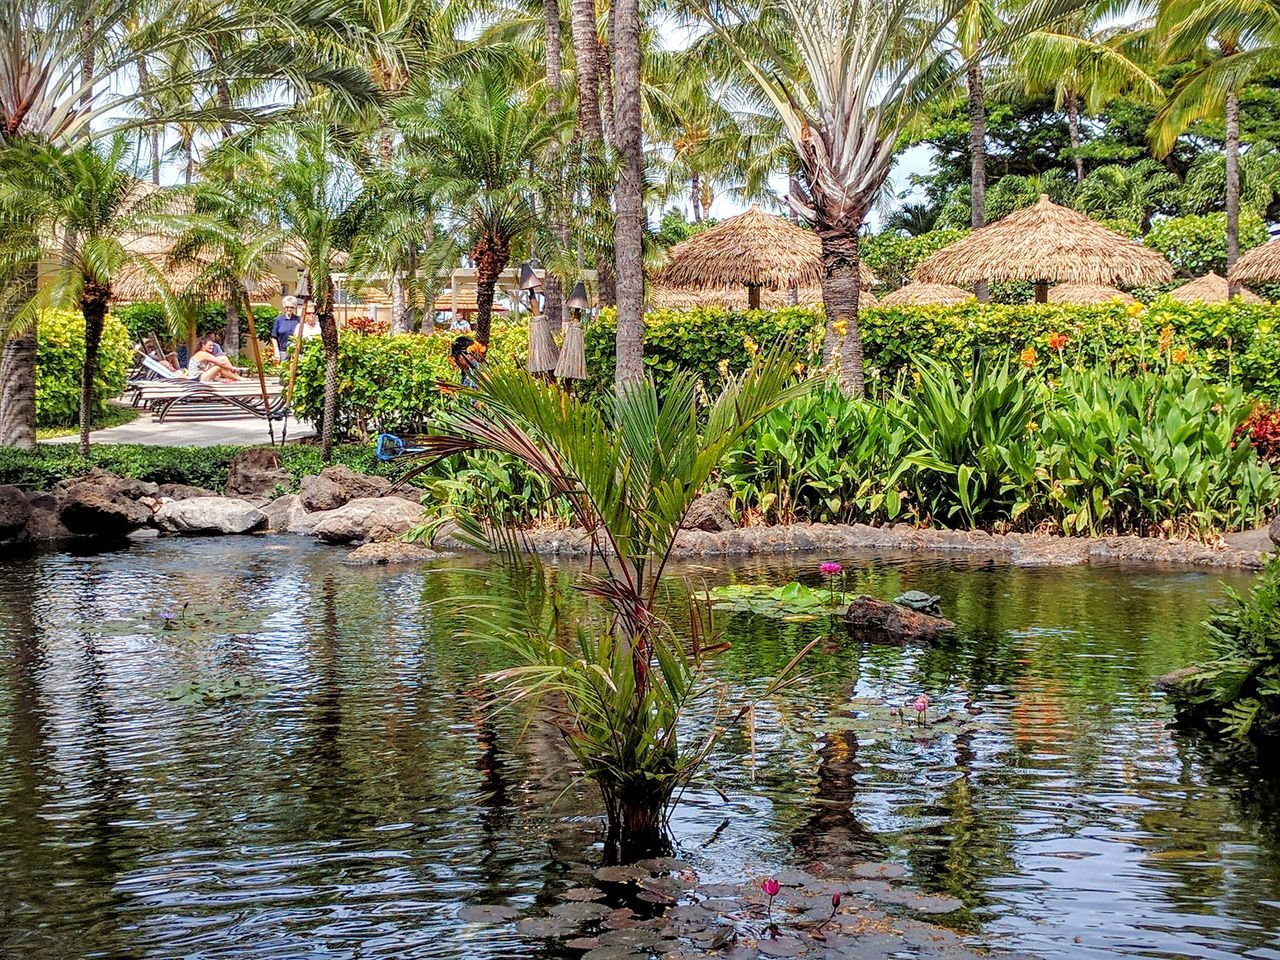 lagoon off of beach club restaurant Water Tranquility Tranquil Scene Green Color Beauty In Nature Travel Destinations Tropical Beauty EyeEm Nature Lover EyeEm Gallery Eyeemphotography Outdoors Tourists Flowers,Plants & Garden Green Nature Coconut Trees Thatched Roof Non-urban Scene Palm Tree Waterfront